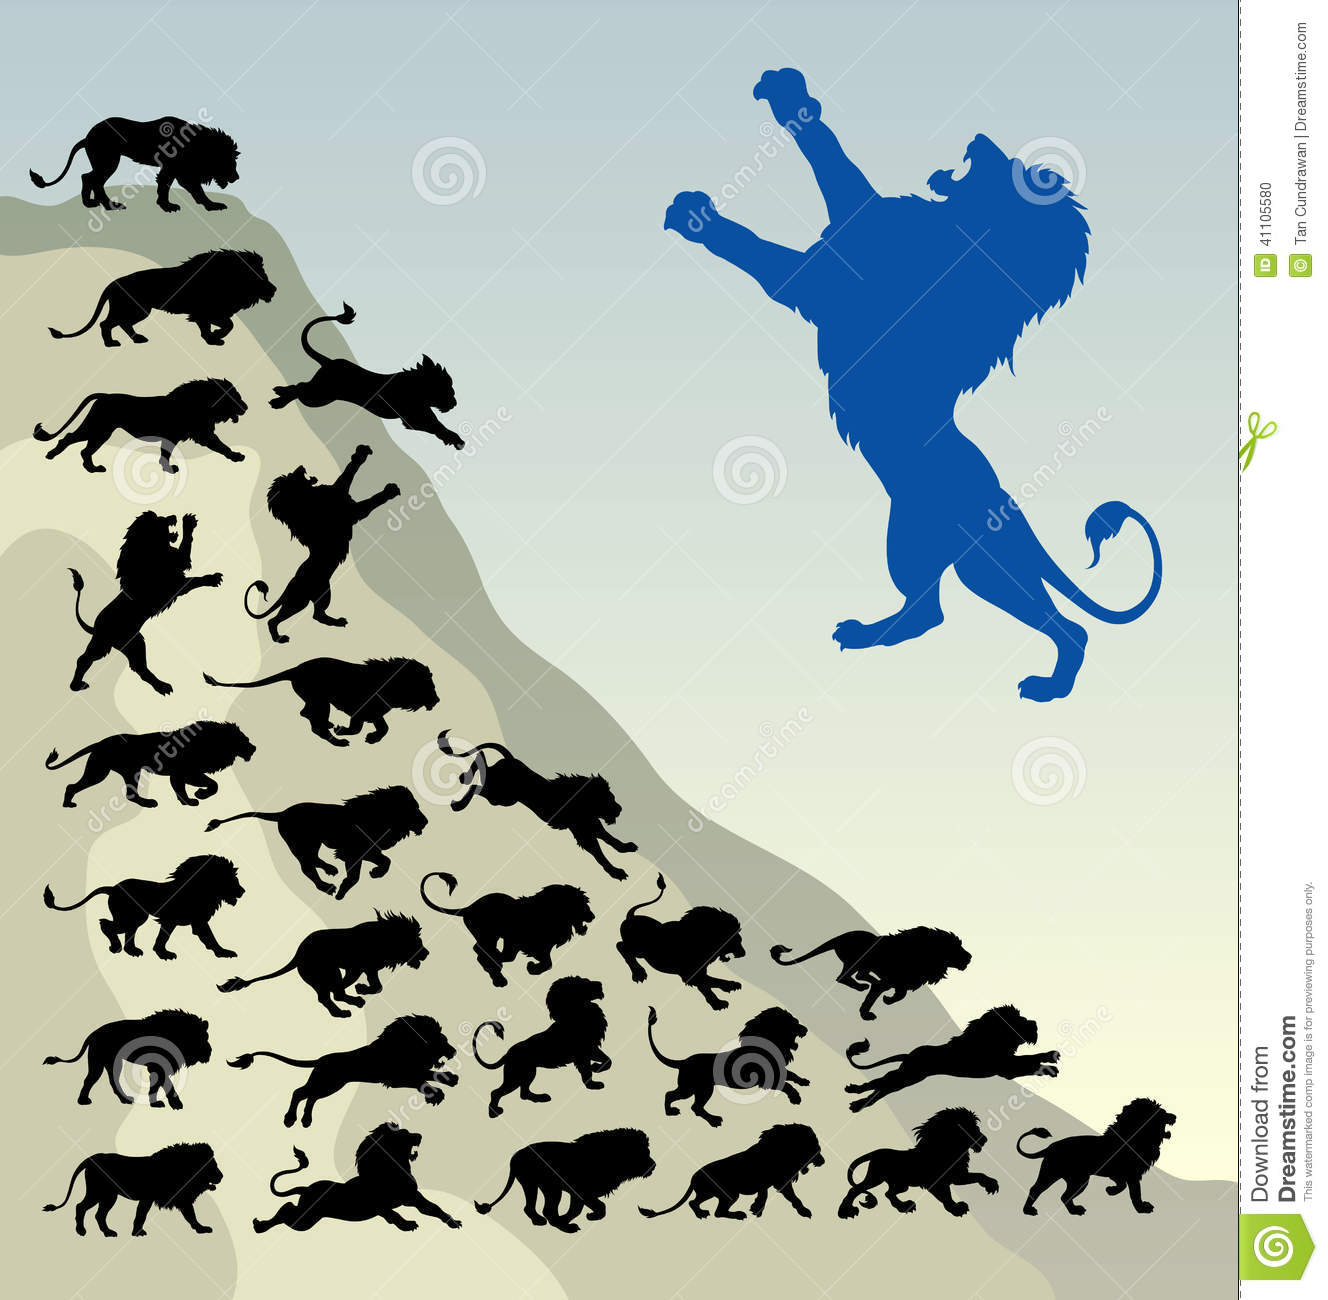 Lion Running Silhouettes Stock Vector Image 41105580